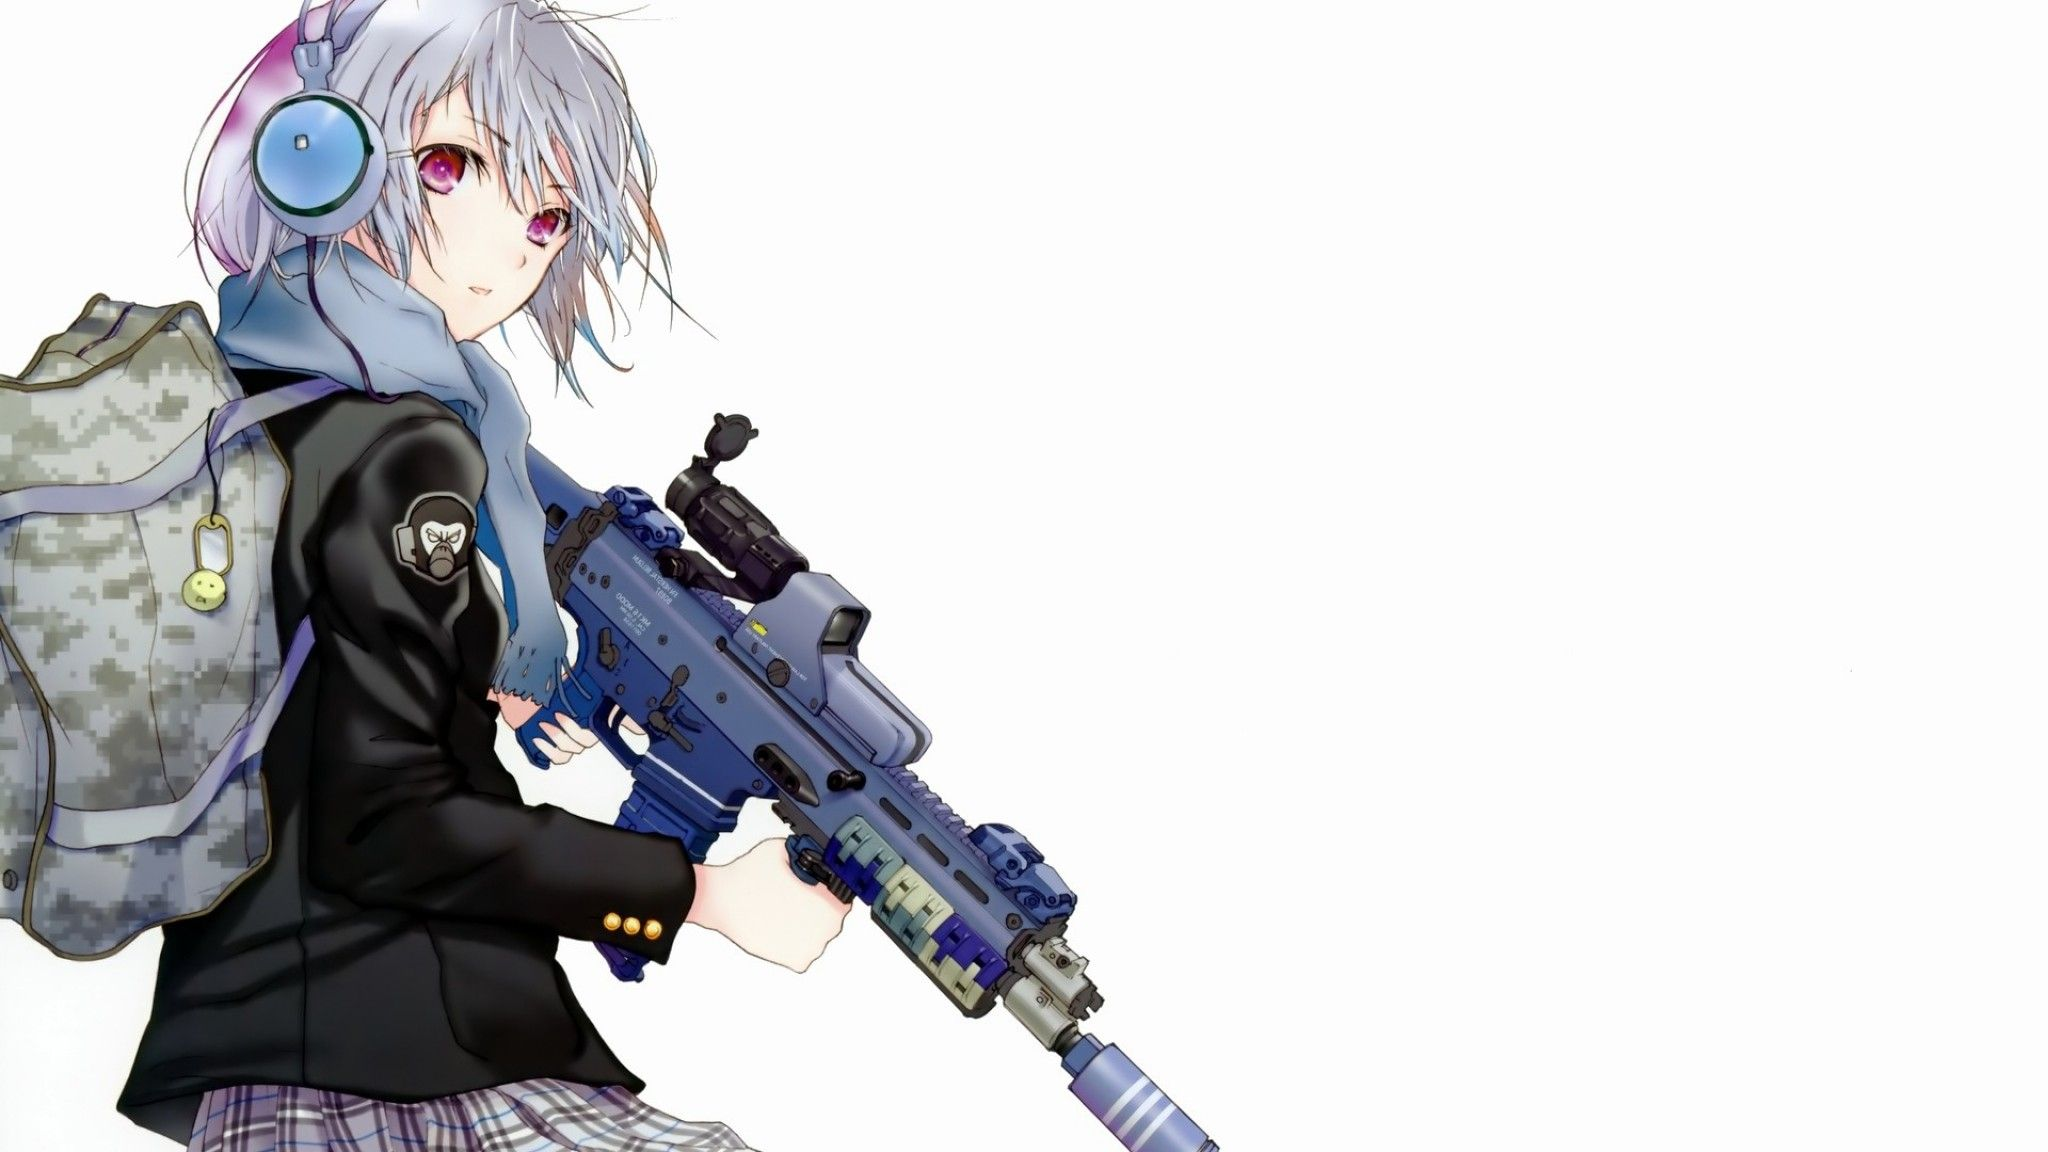 2048x1152 Anime Wallpapers Top Free 2048x1152 Anime Backgrounds Wallpaperaccess